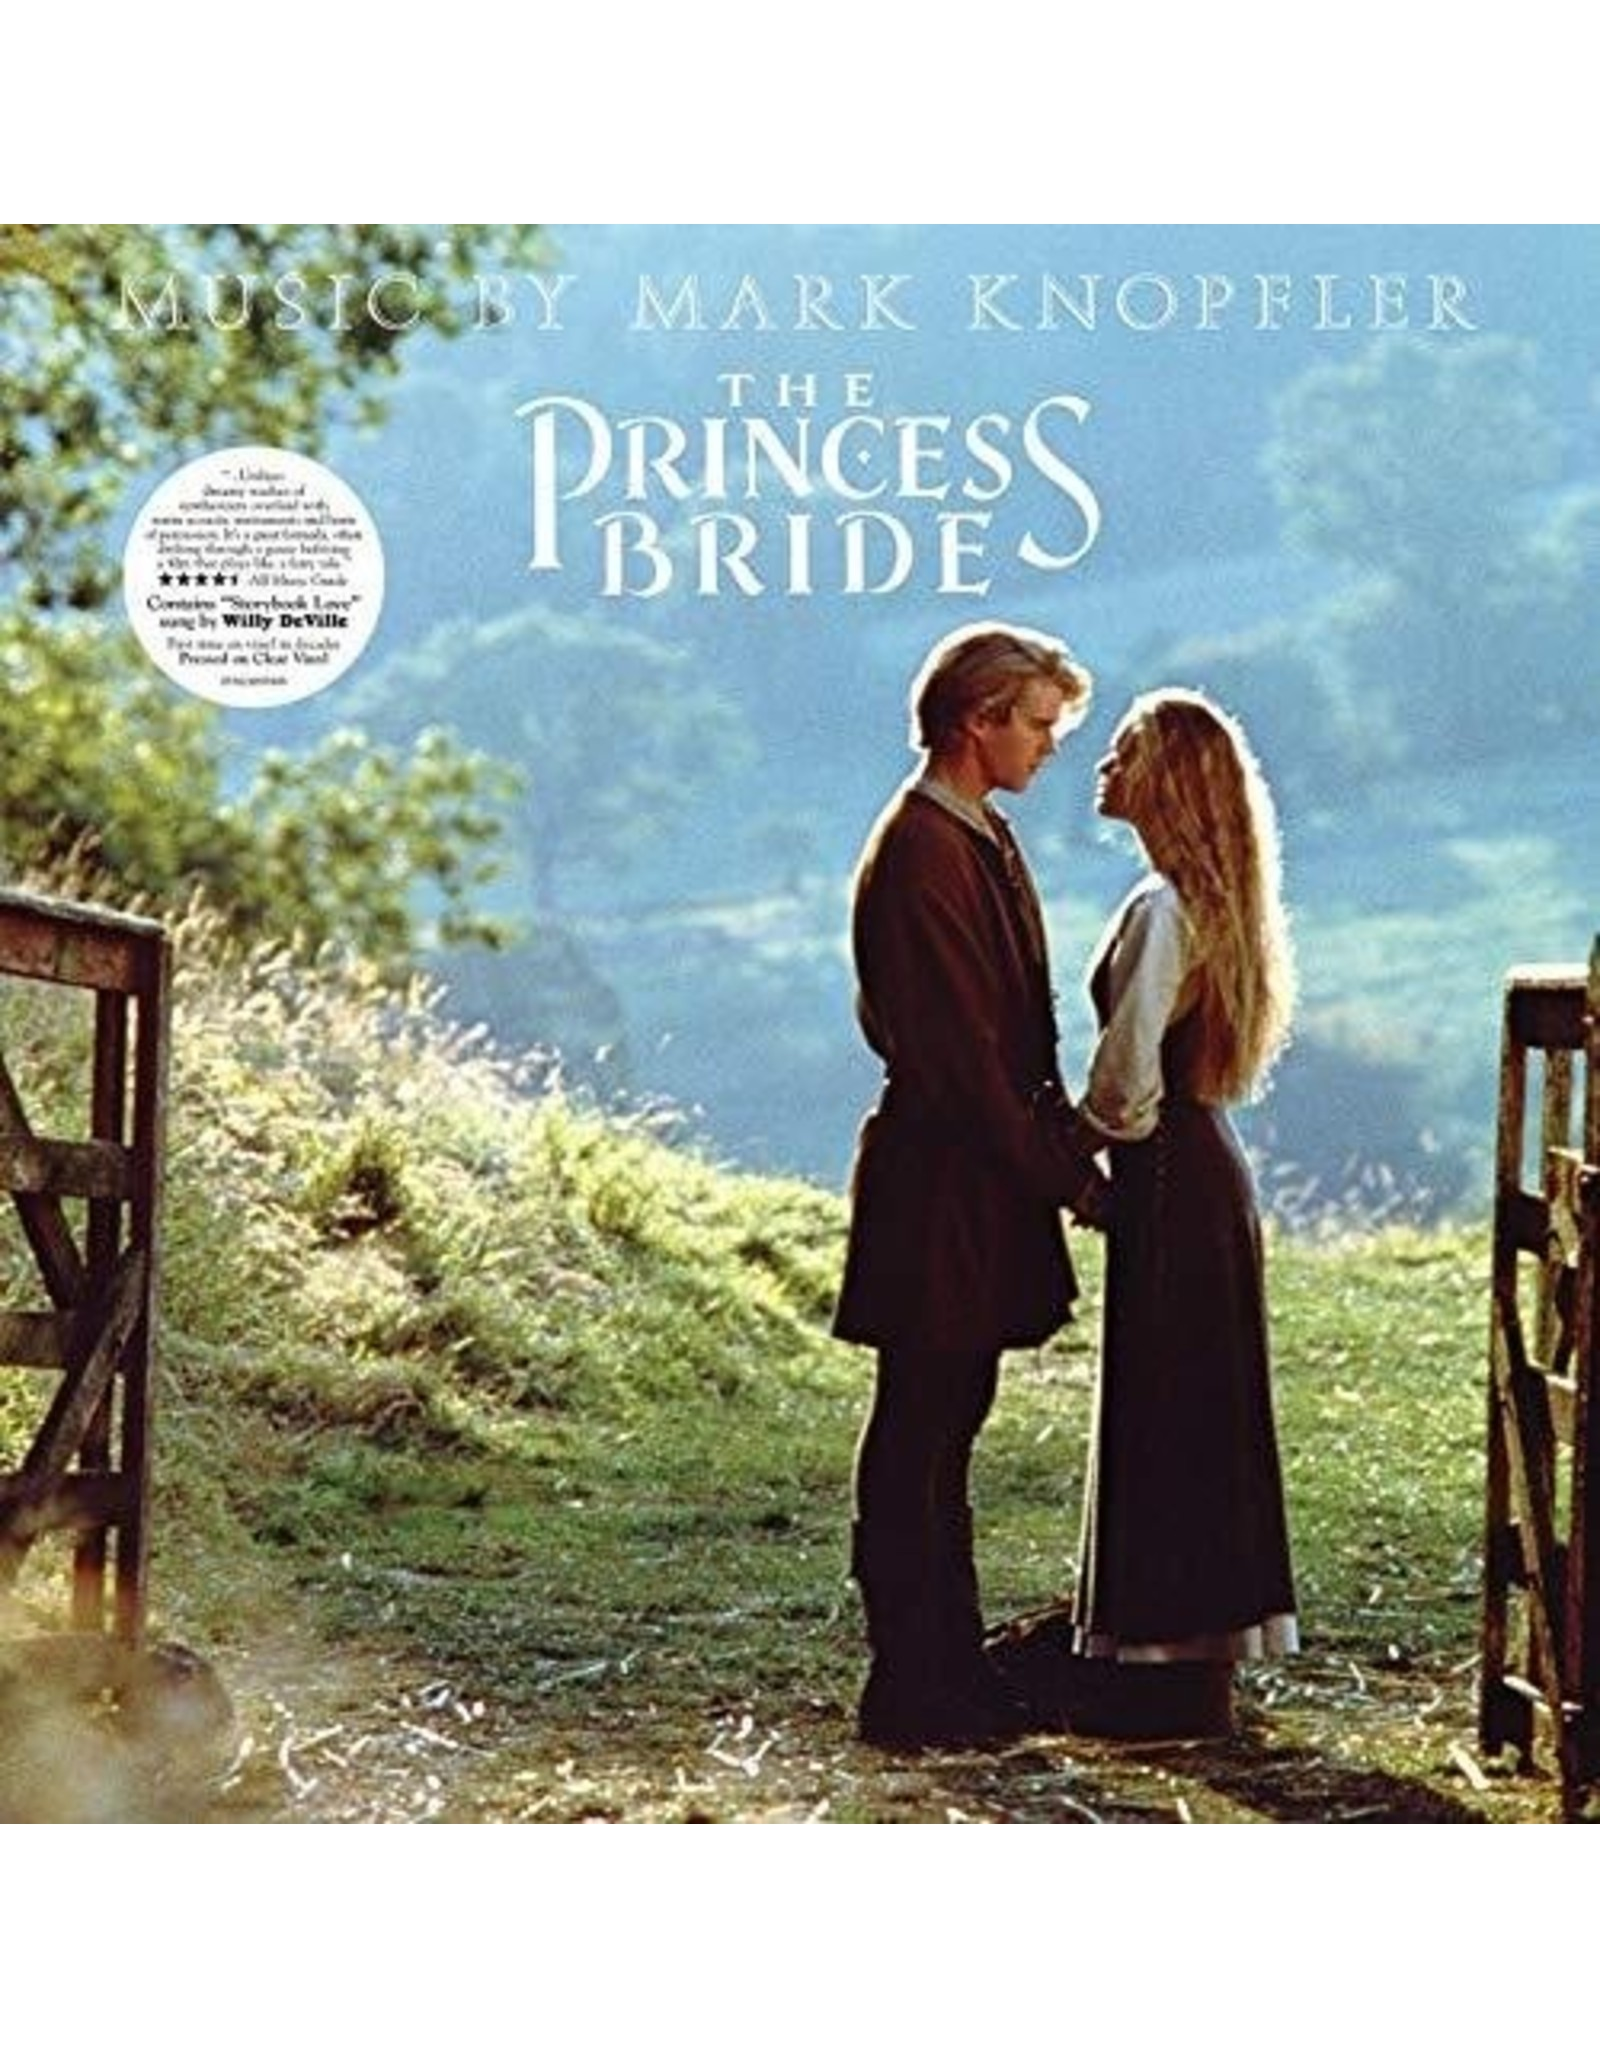 New Vinyl Mark Knopfler - Princess Bride OST LP